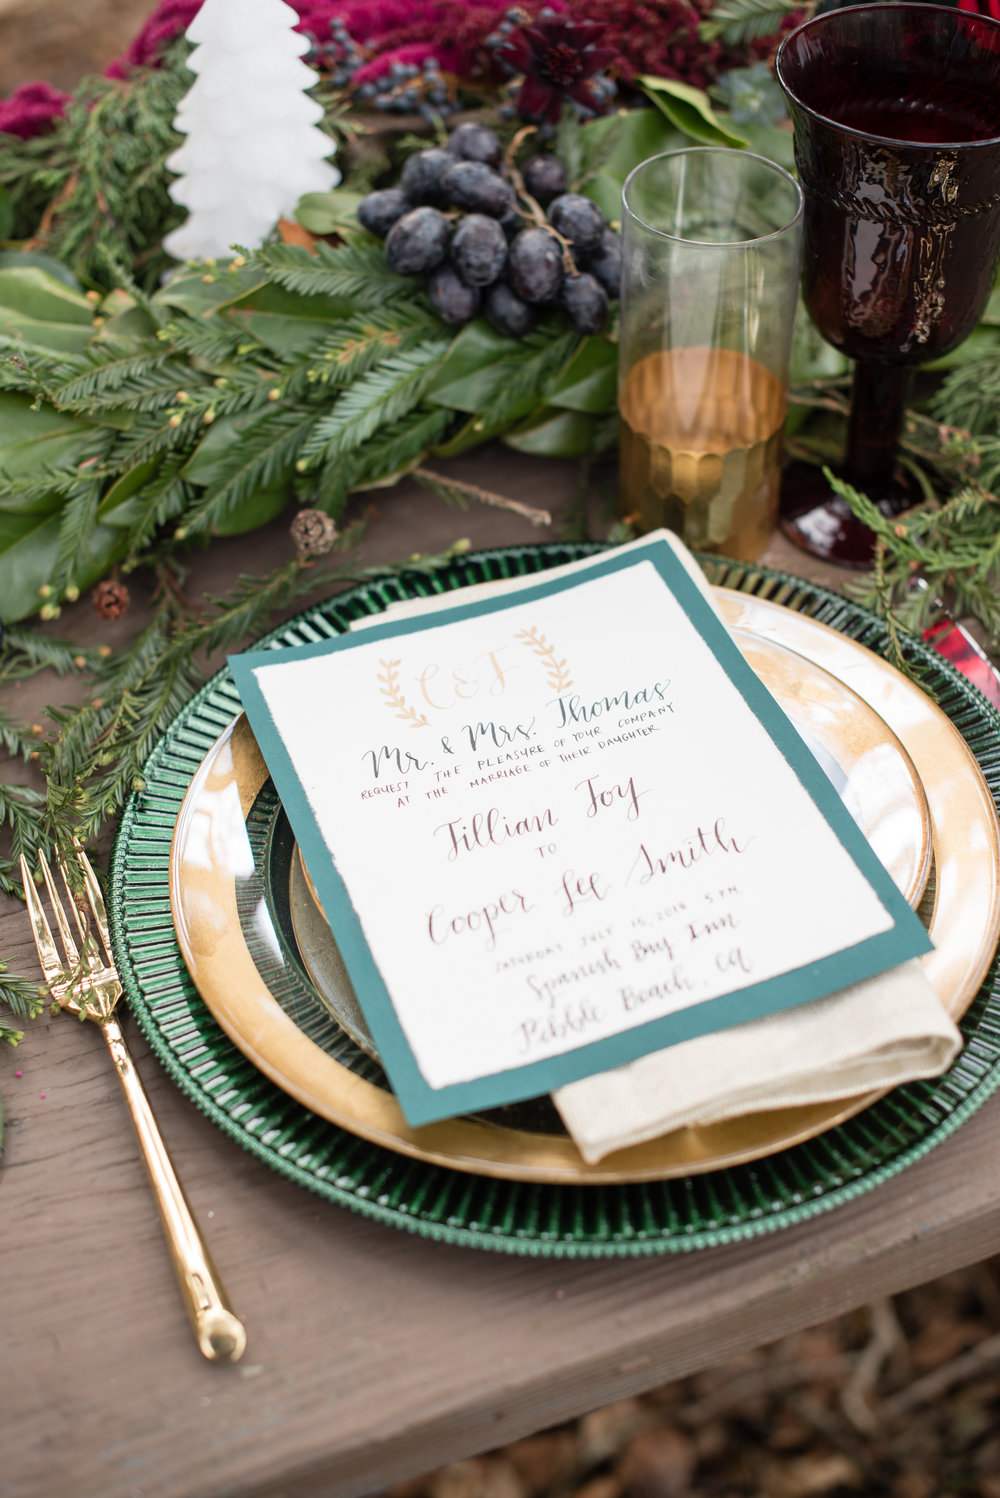 www.santabarbarawedding.com | Carrie Pollard | Church's Christmas Trees | Place Setting